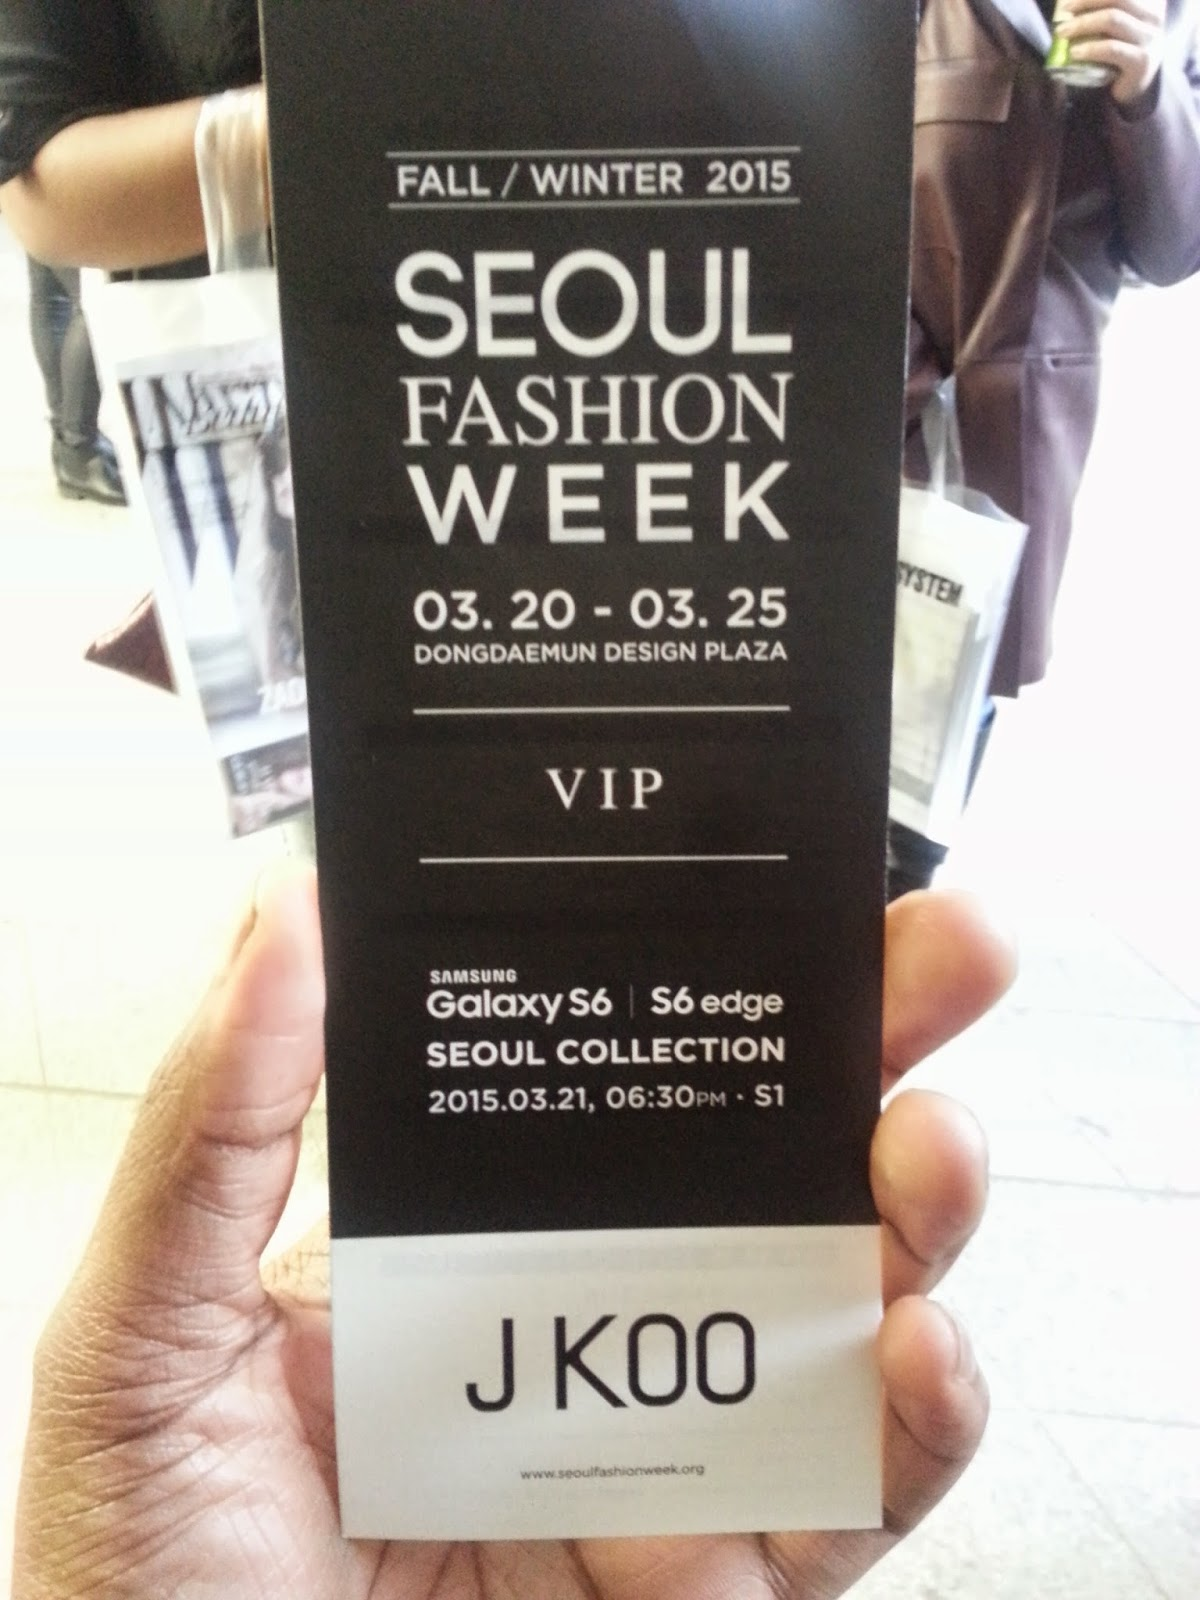 Seoul fashion week 2018 tickets